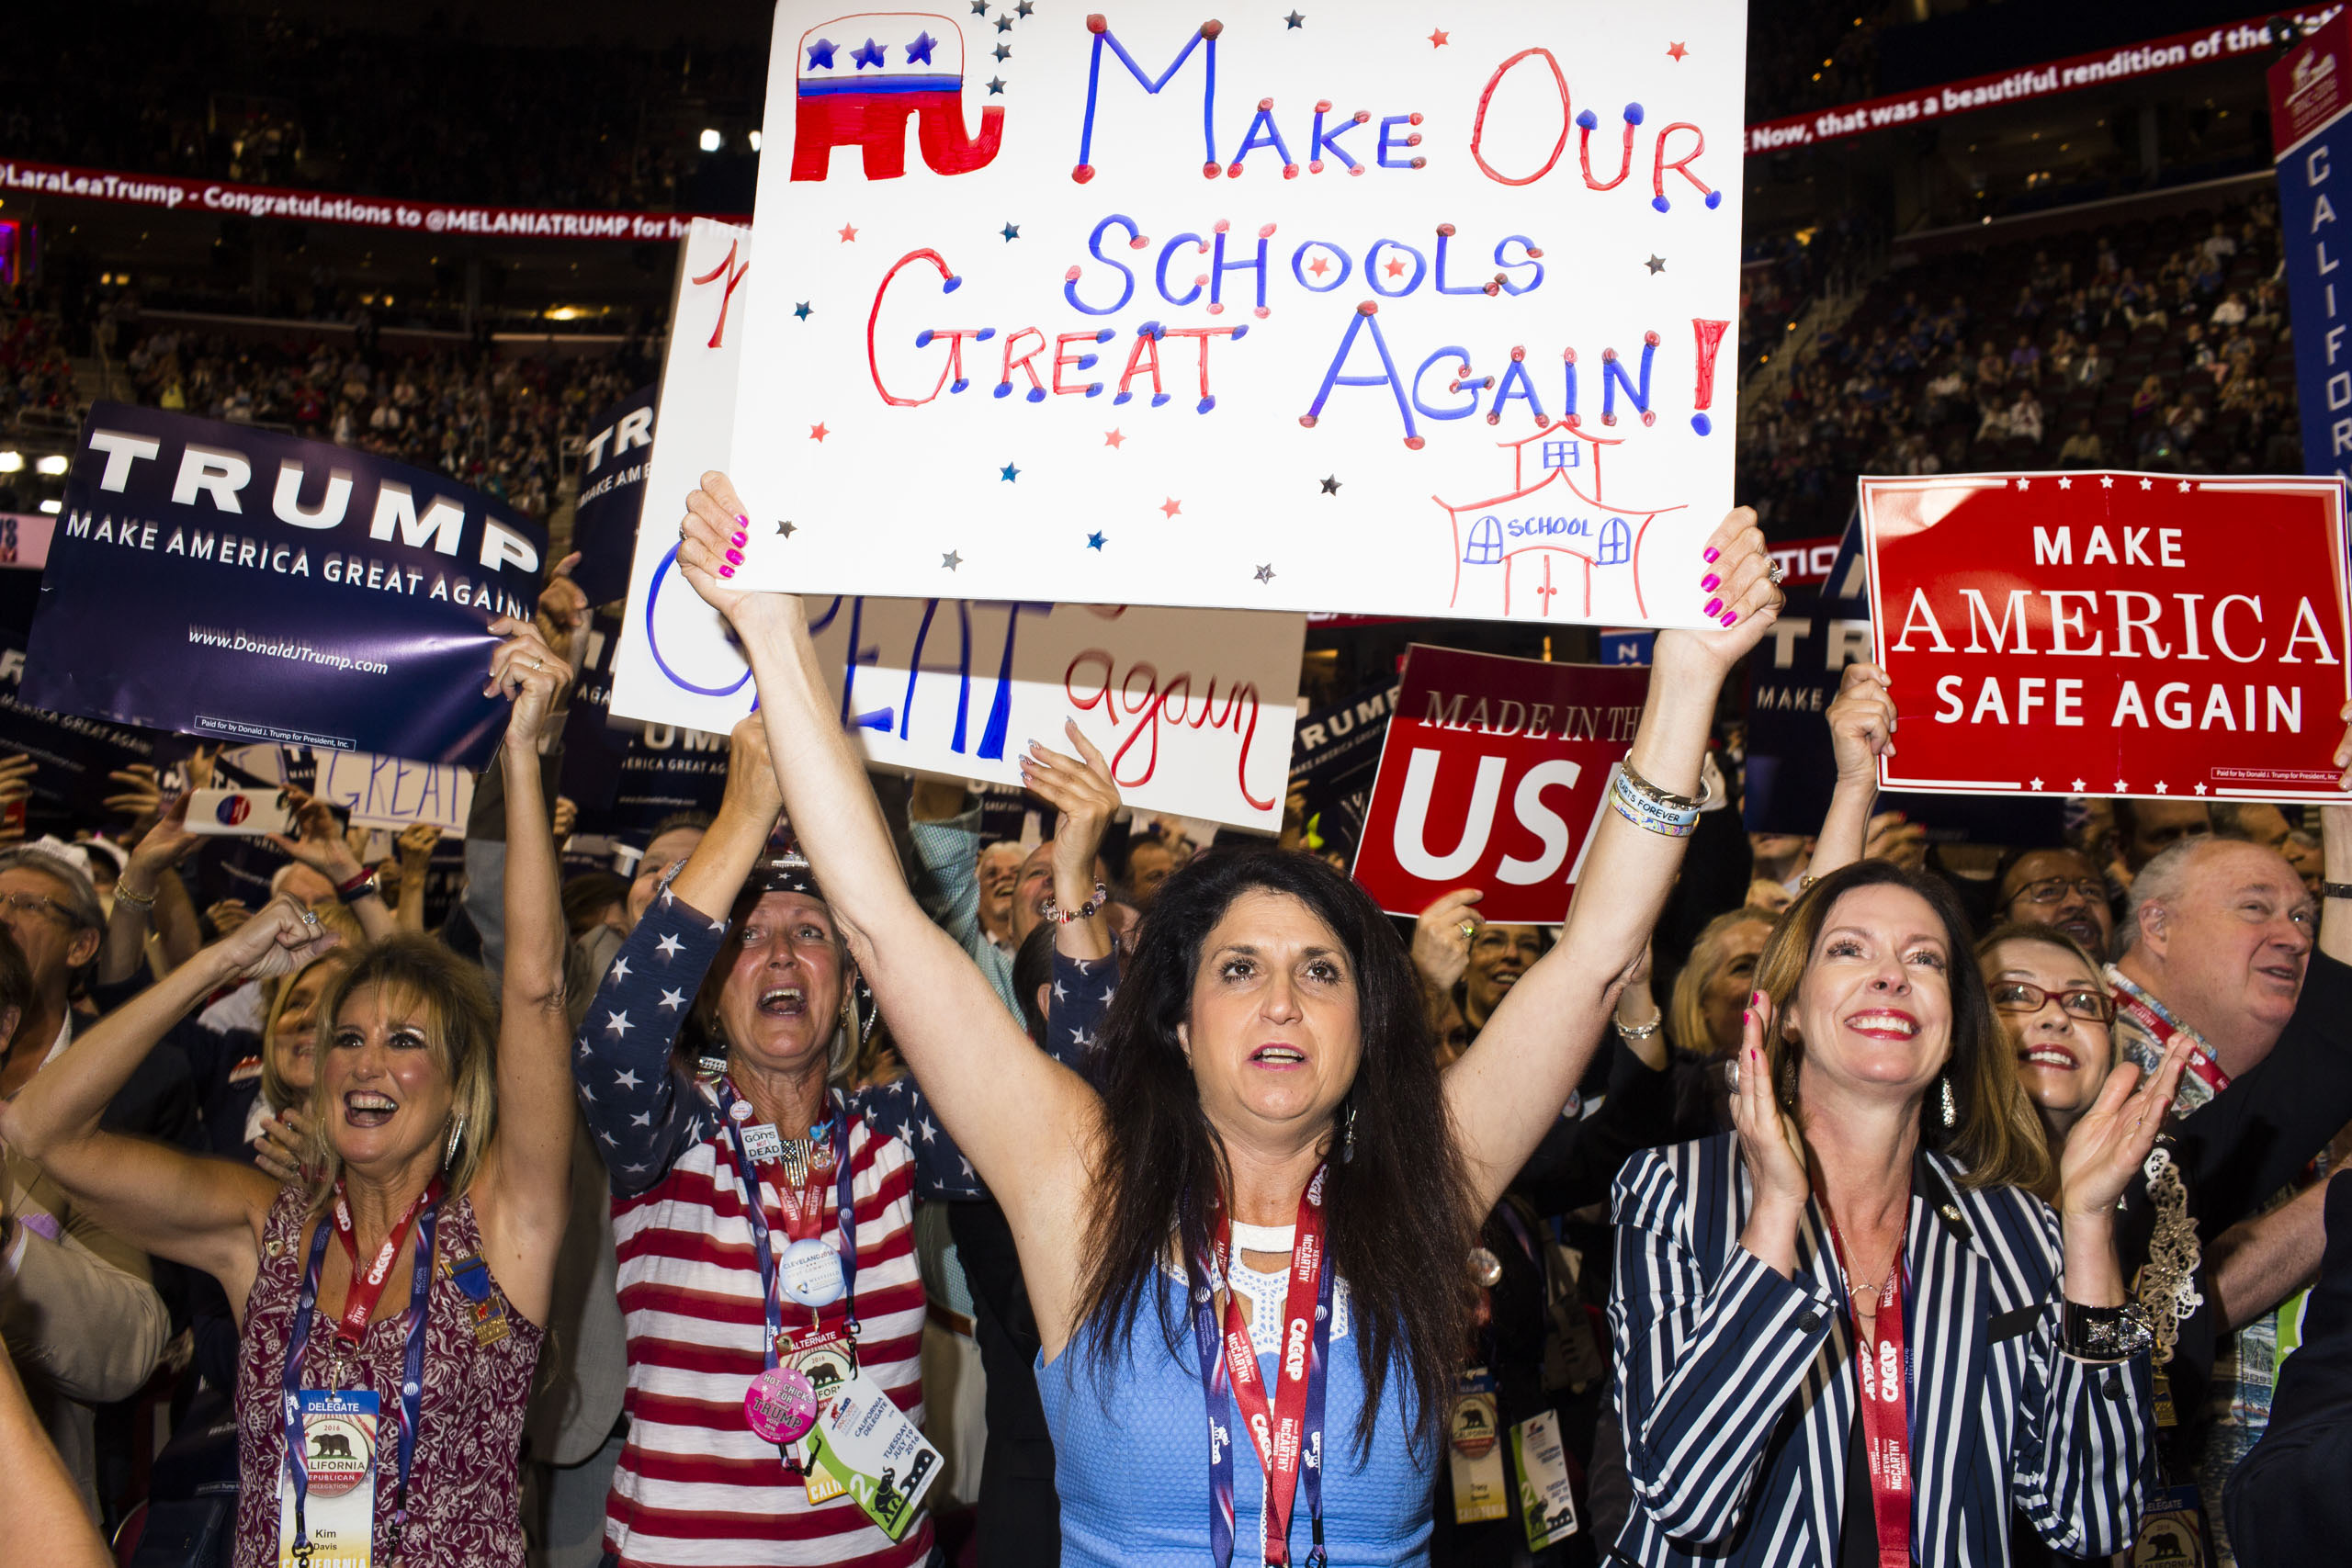 California delegates on the floor at the Republican National Convention, July 19, 2016 in Cleveland.